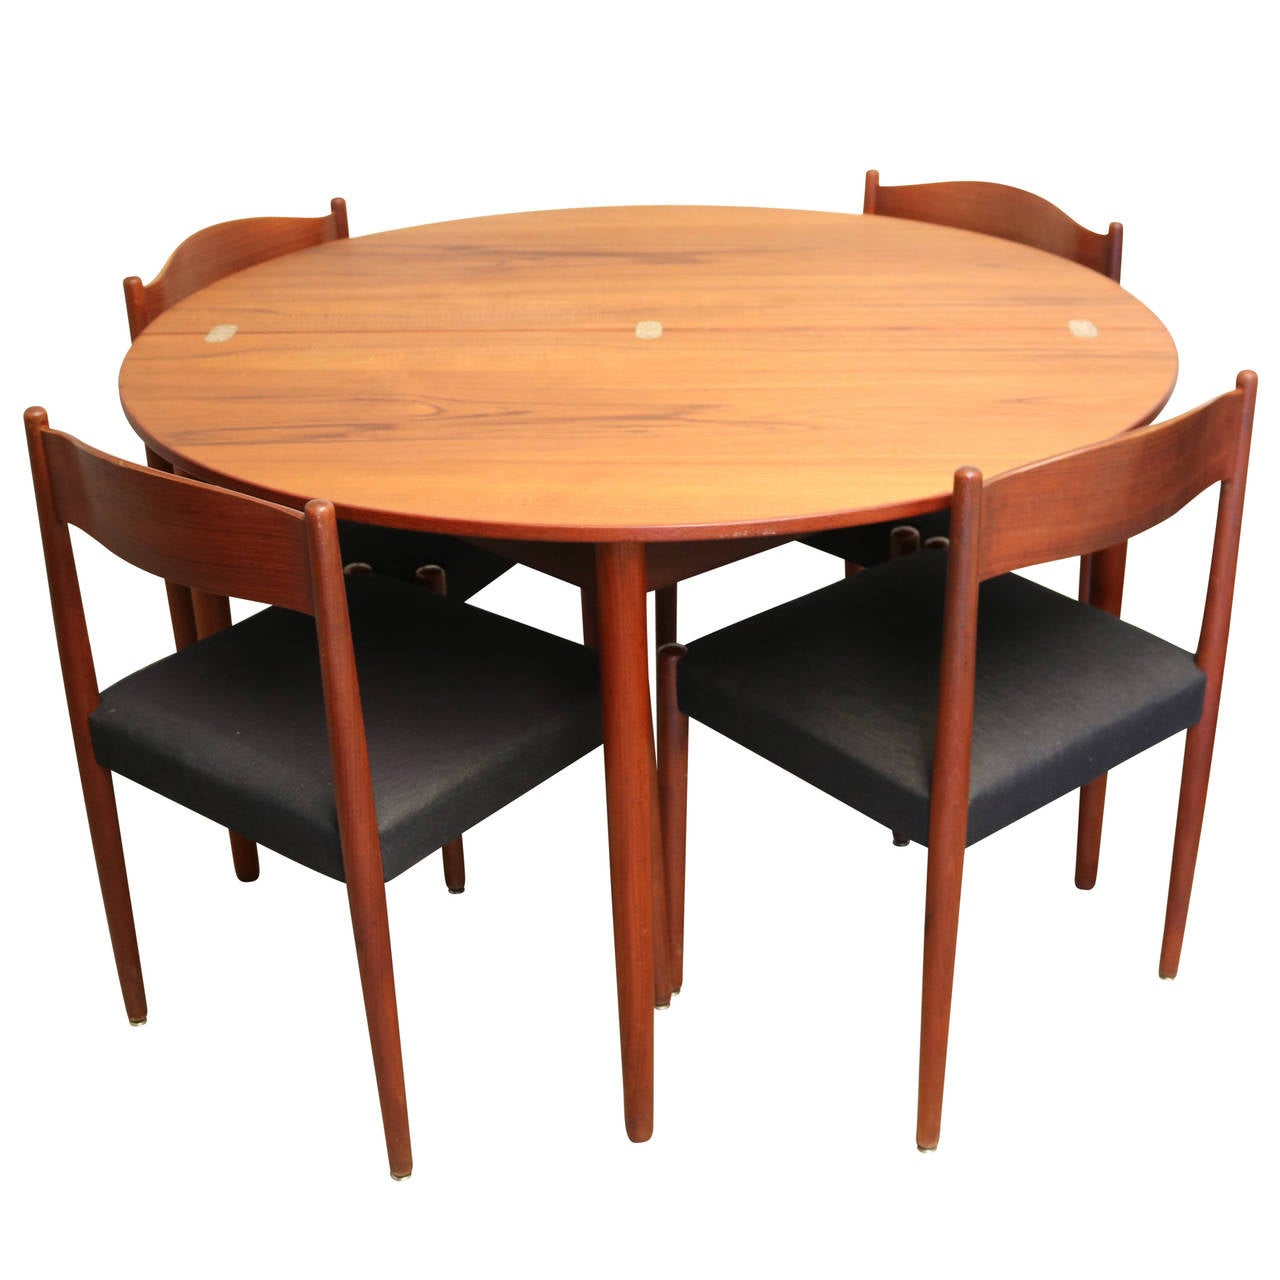 round teak folding dining table and chairs by poul volther for frem rojle at 1stdibs. Black Bedroom Furniture Sets. Home Design Ideas